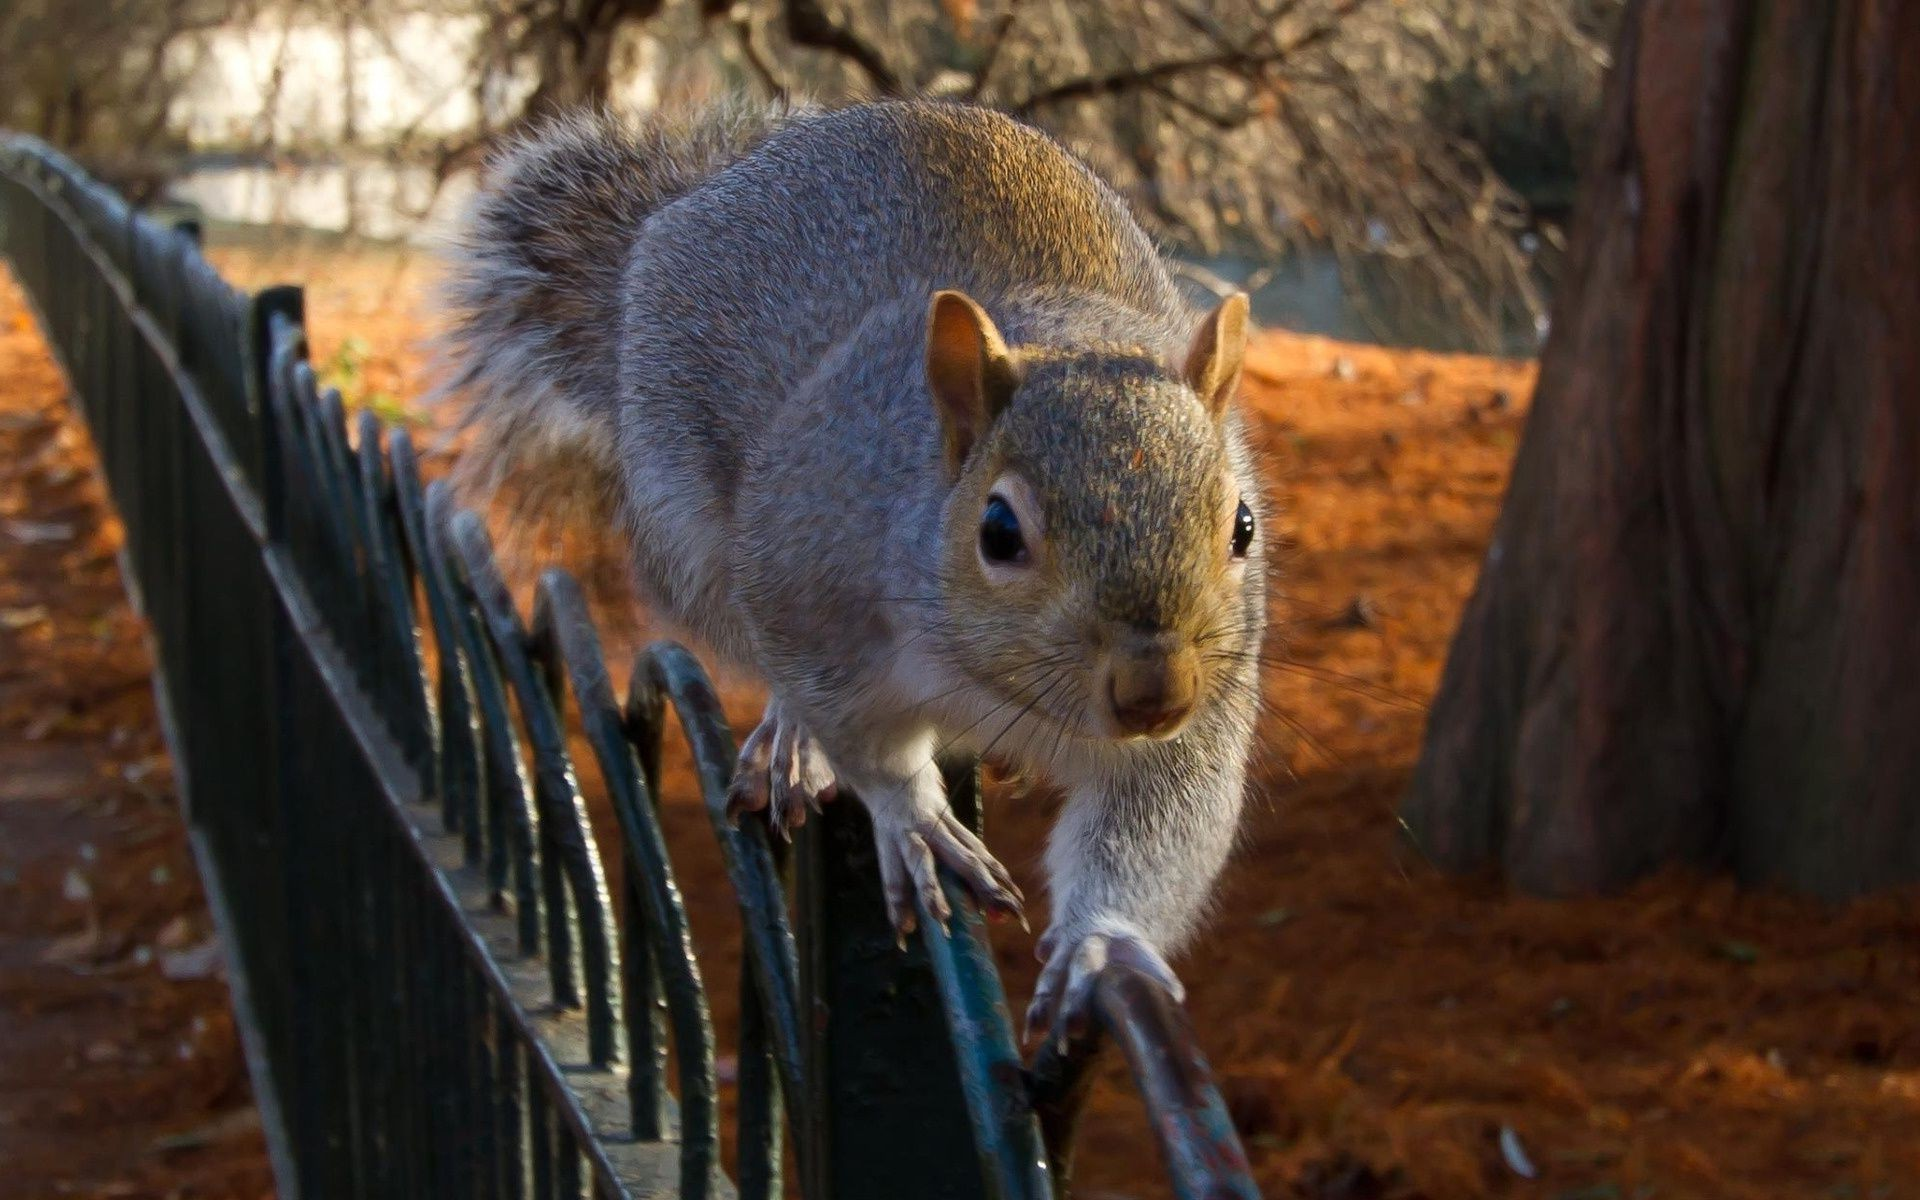 squirrel runs along the fence